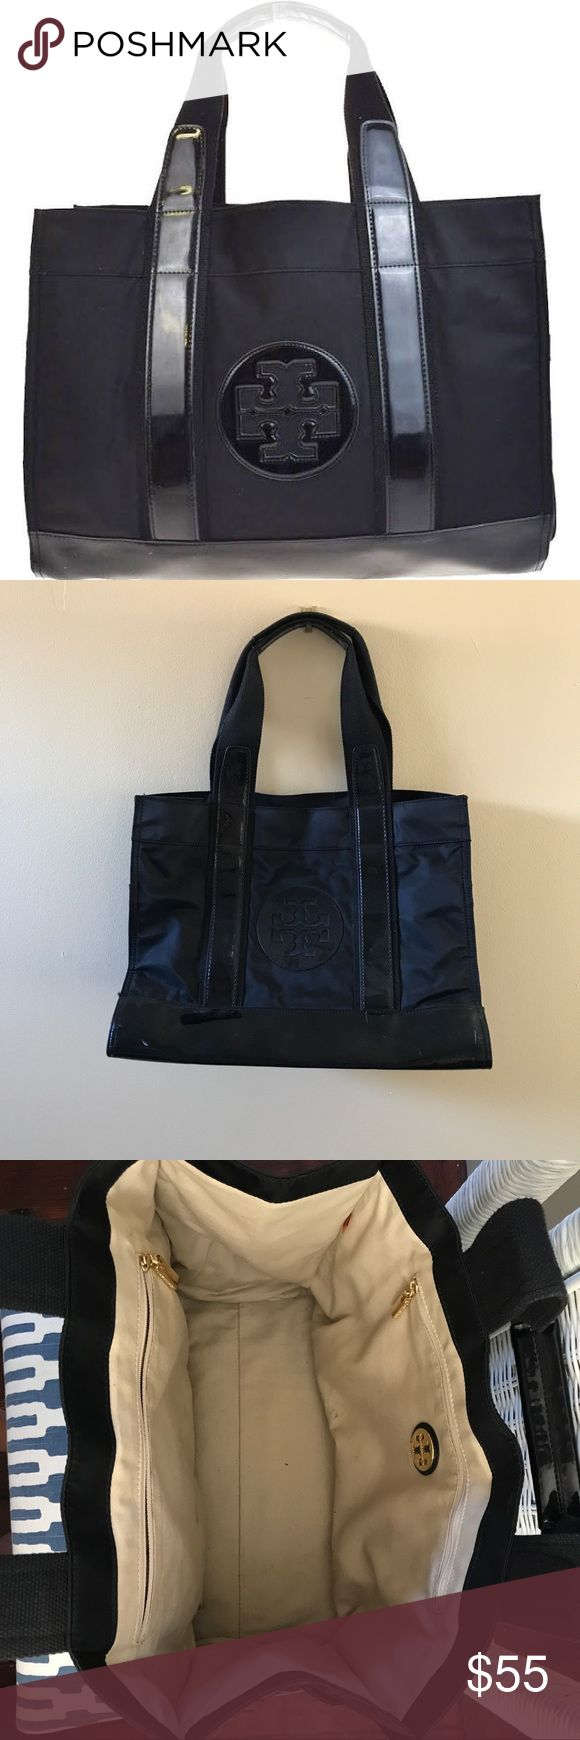 Tory Burch Small Ella tote bag Small nylon totes bag in great condition Tory Burch Bags Totes